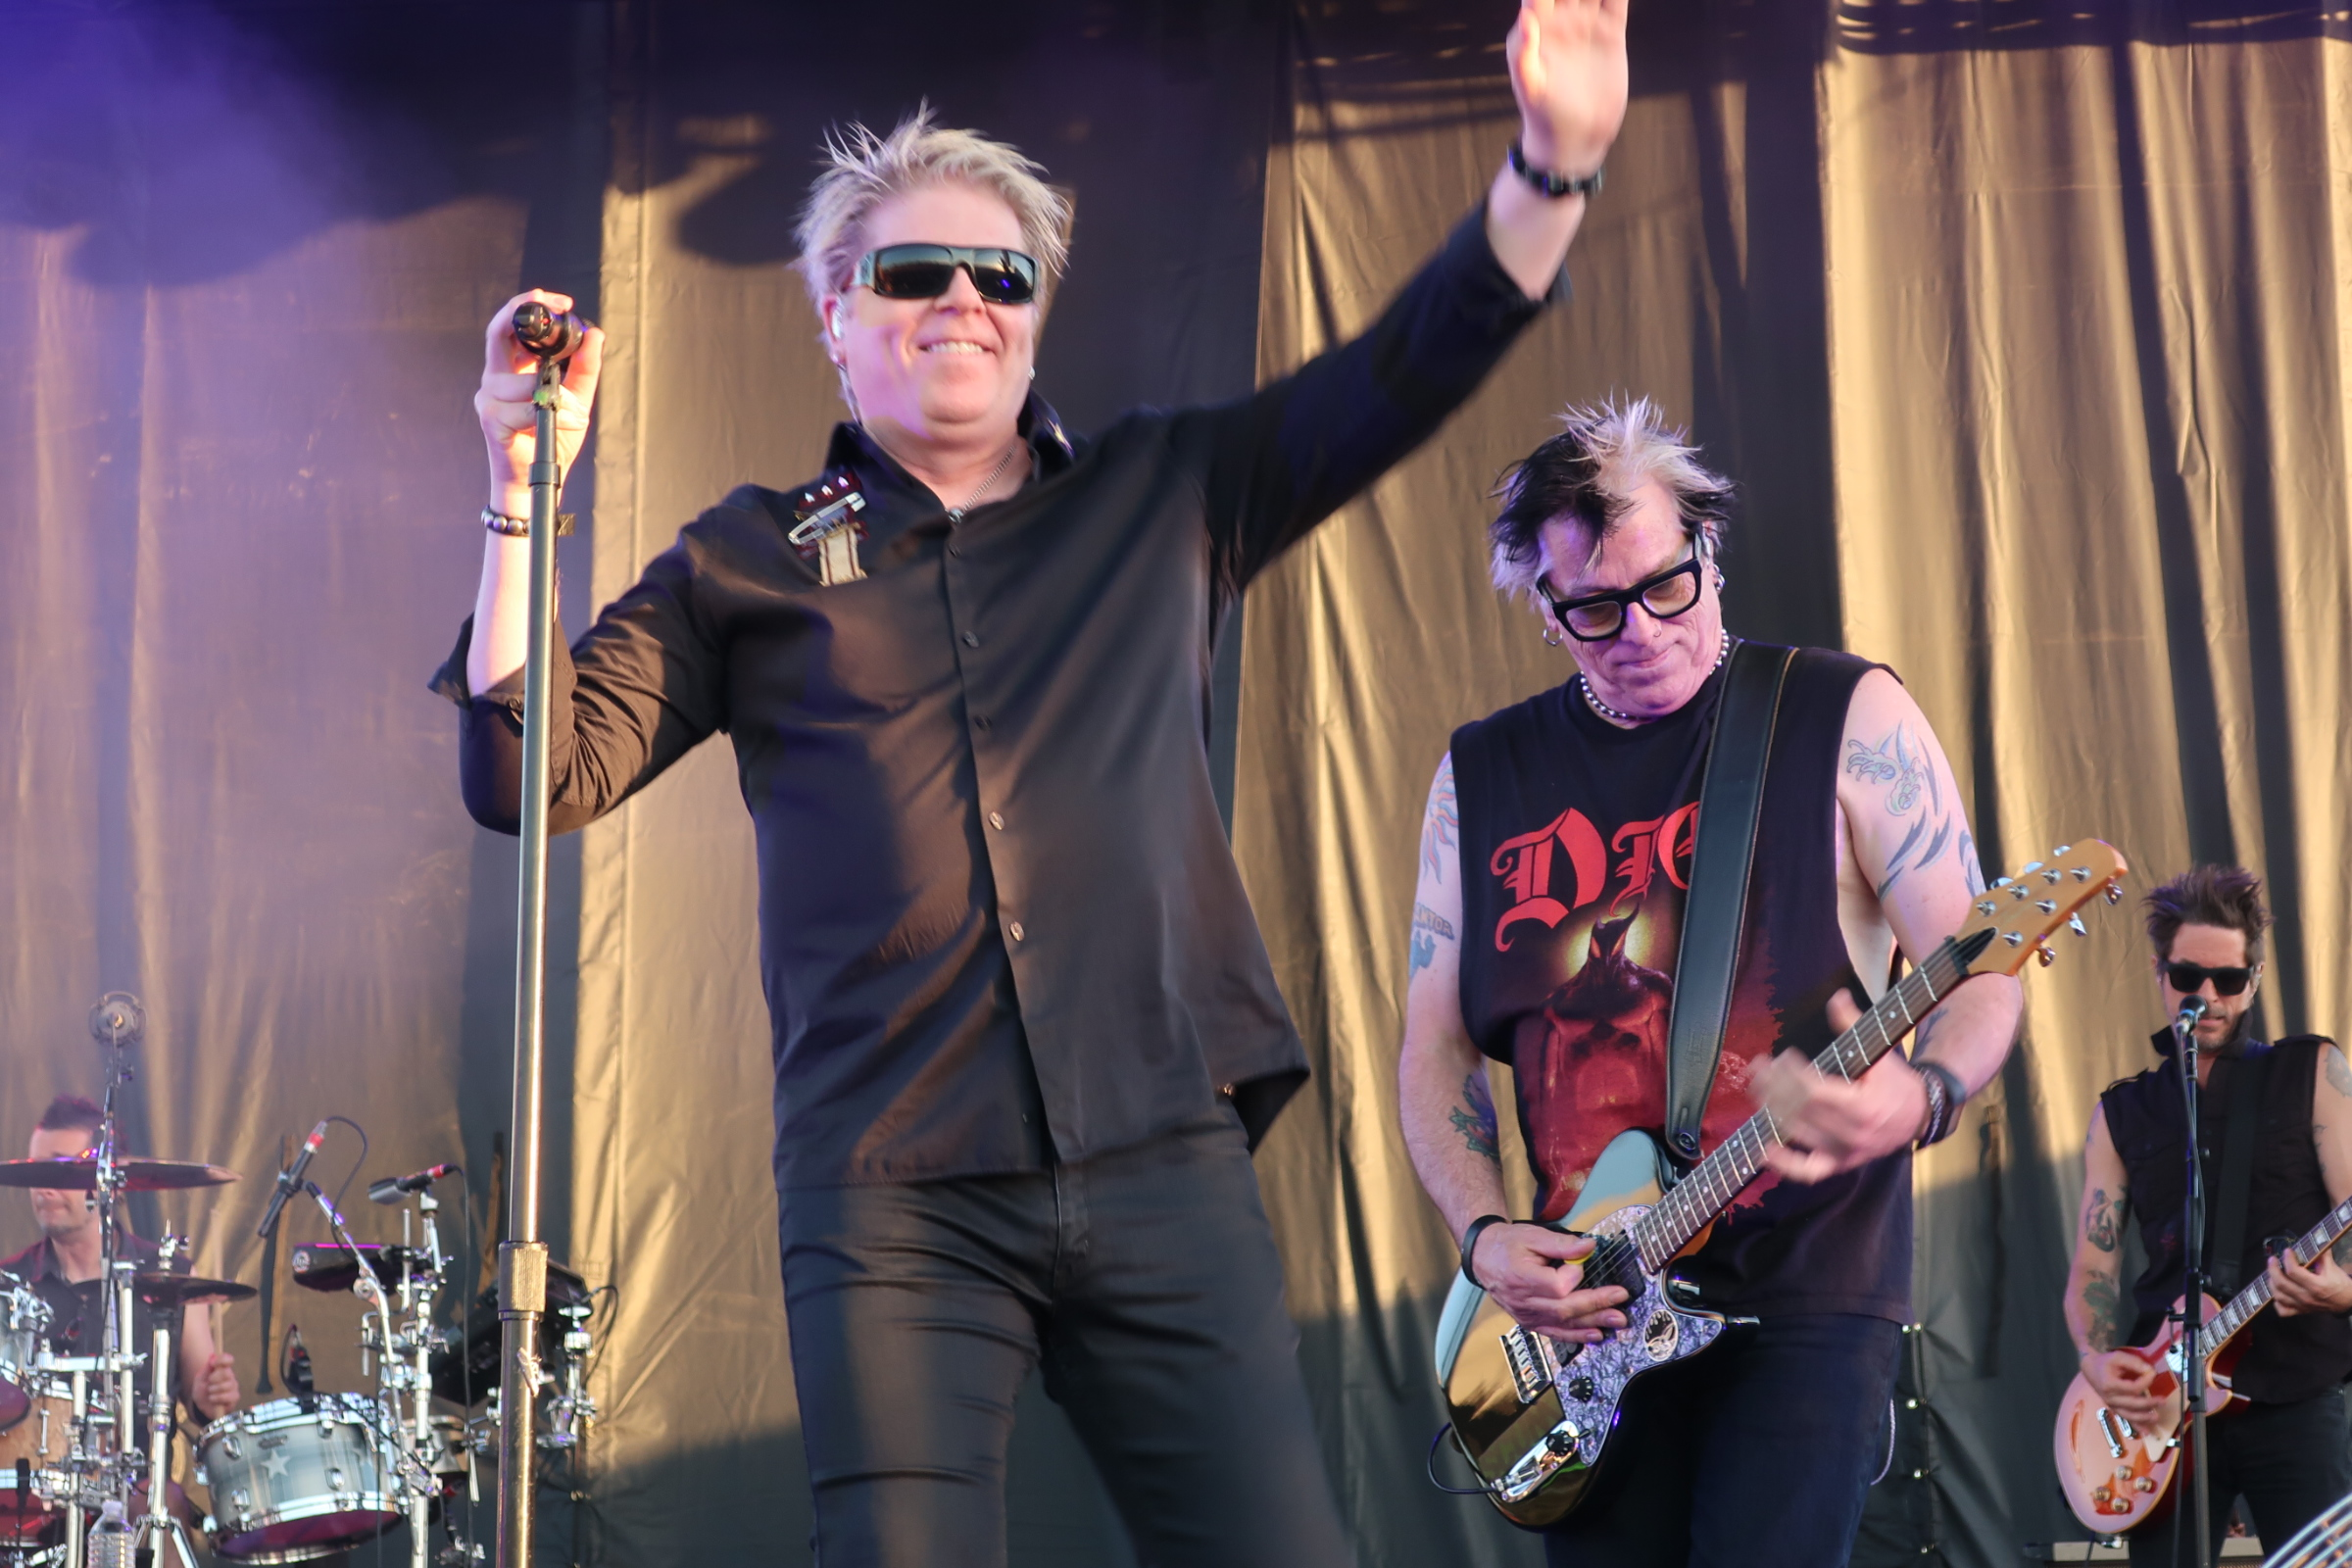 Dexter Holland and Noodles of The Offspring at the 2018 stop of Sabroso Craft Beer, Taco & Music Festival in Portland, Oregon.